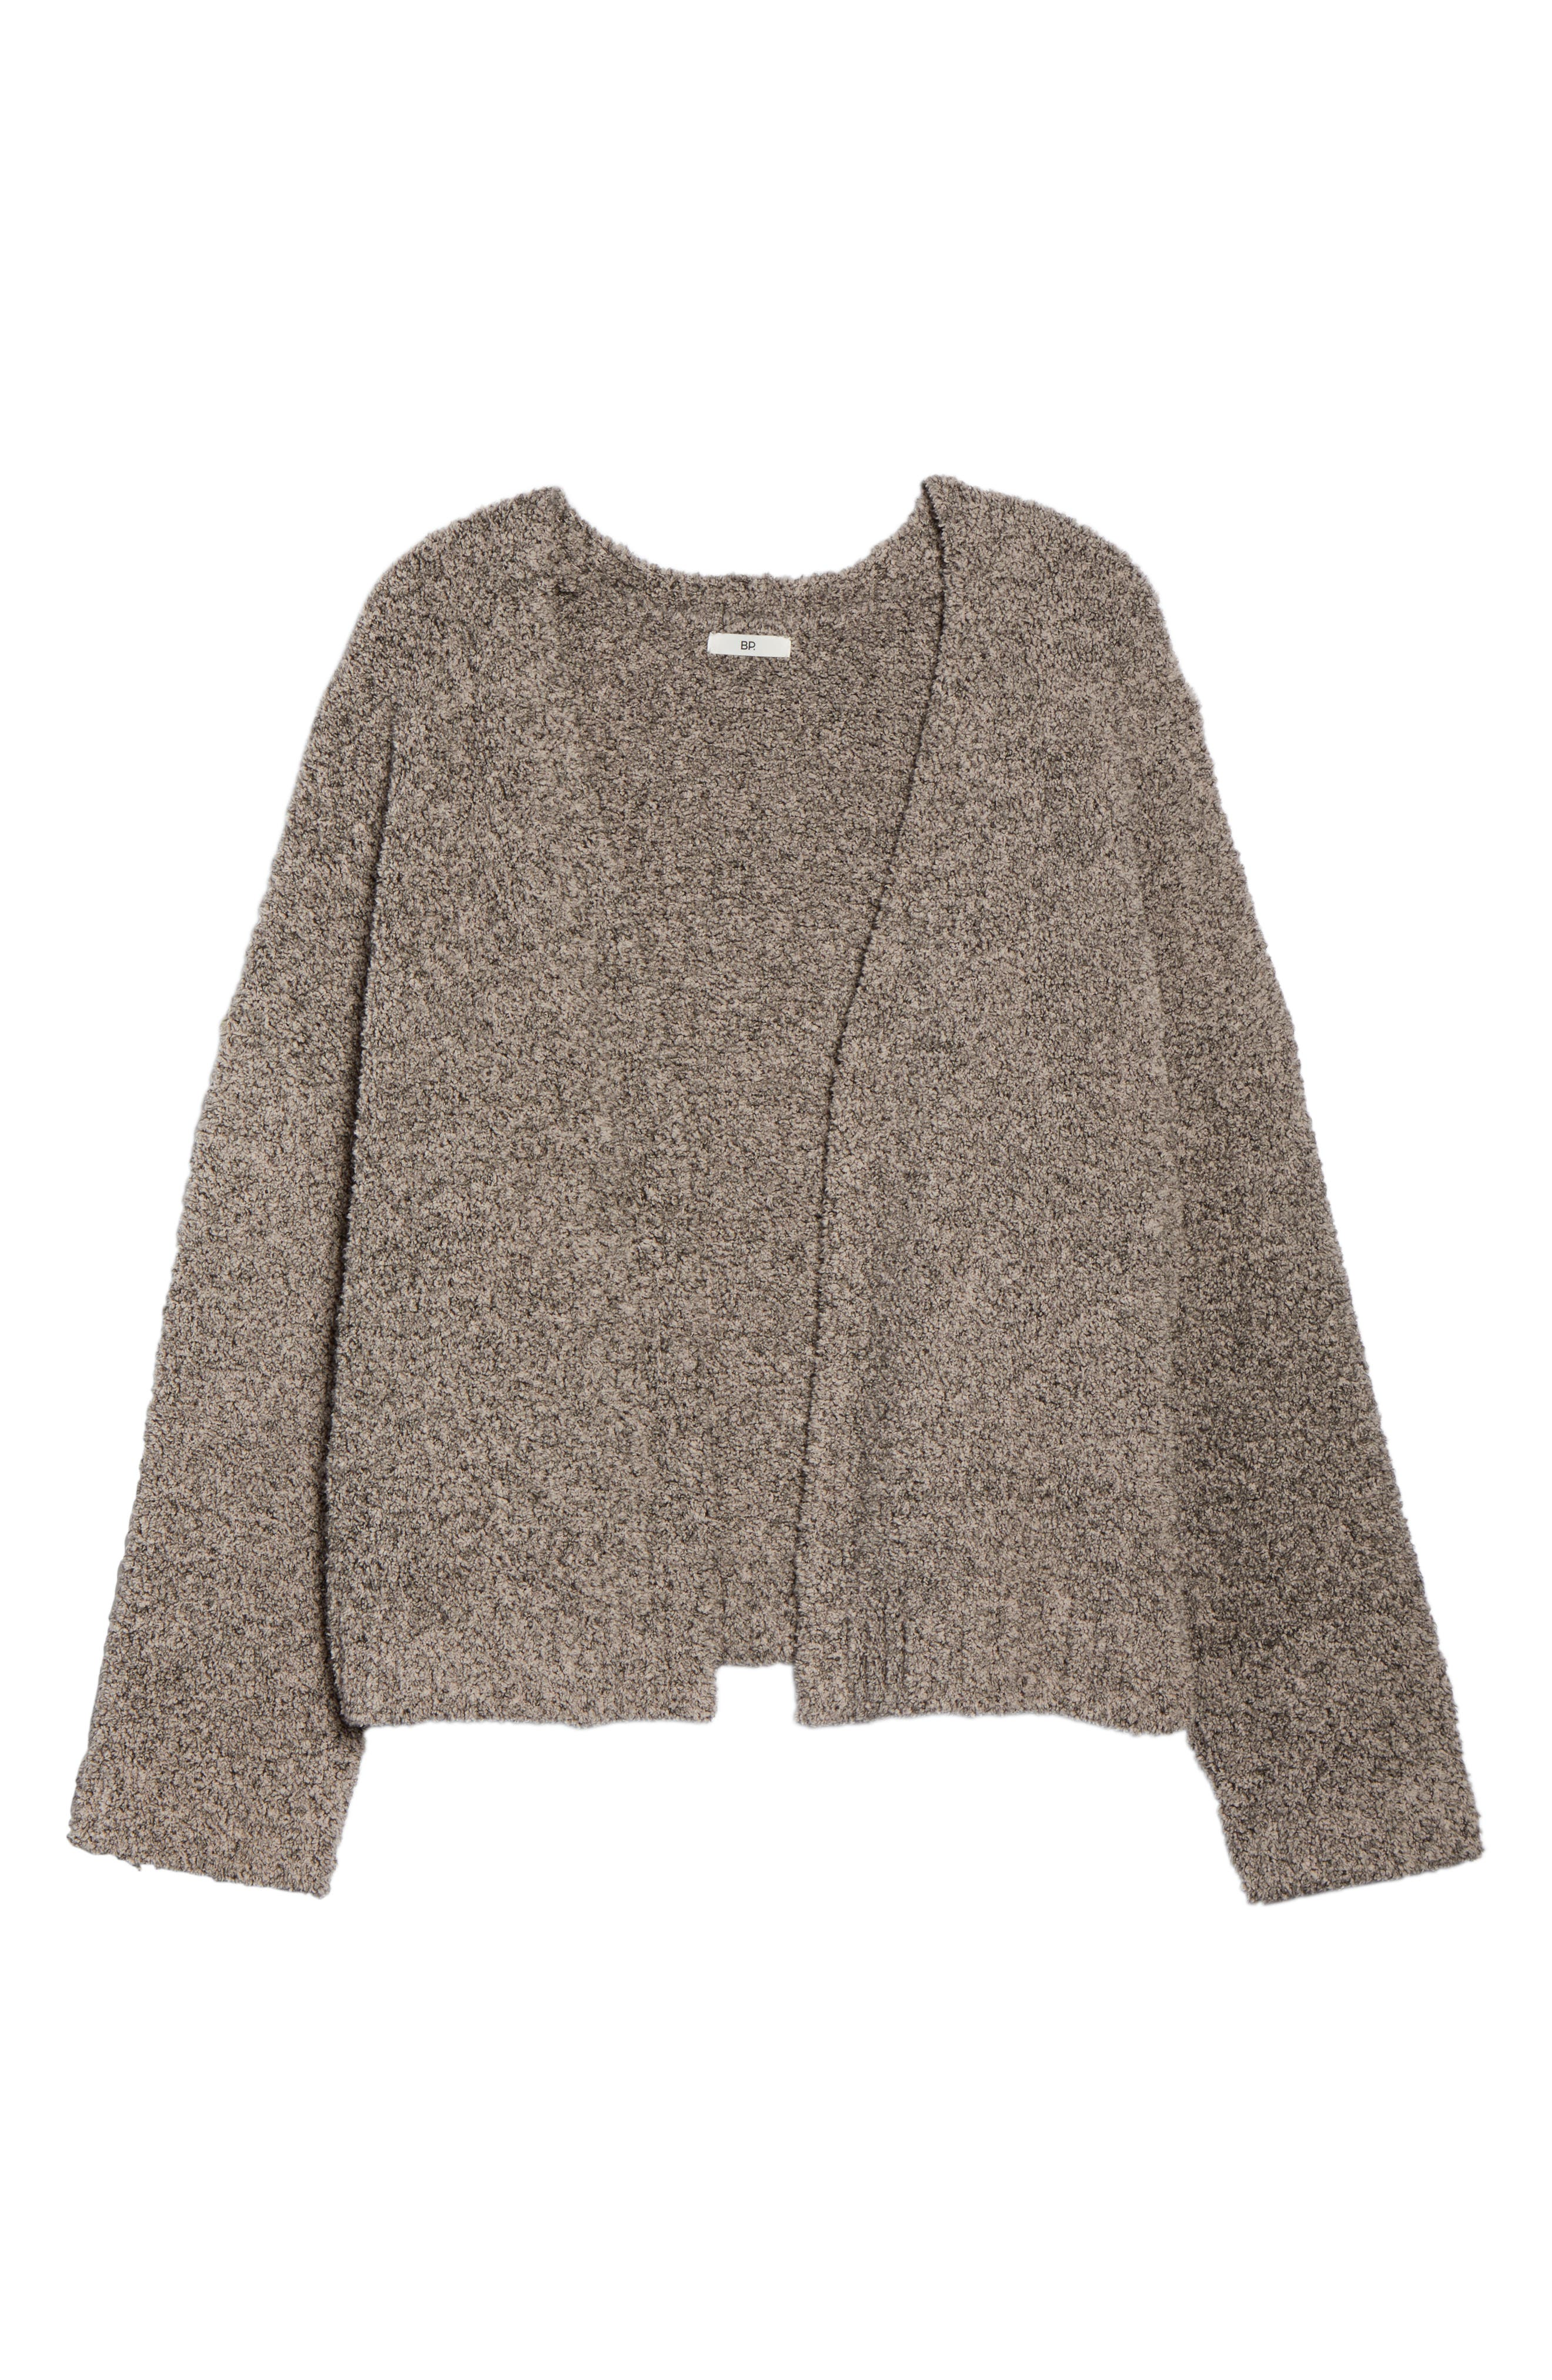 BP.,                             Fluffy Cardigan,                             Alternate thumbnail 6, color,                             PINK ADOBE COZY MARL